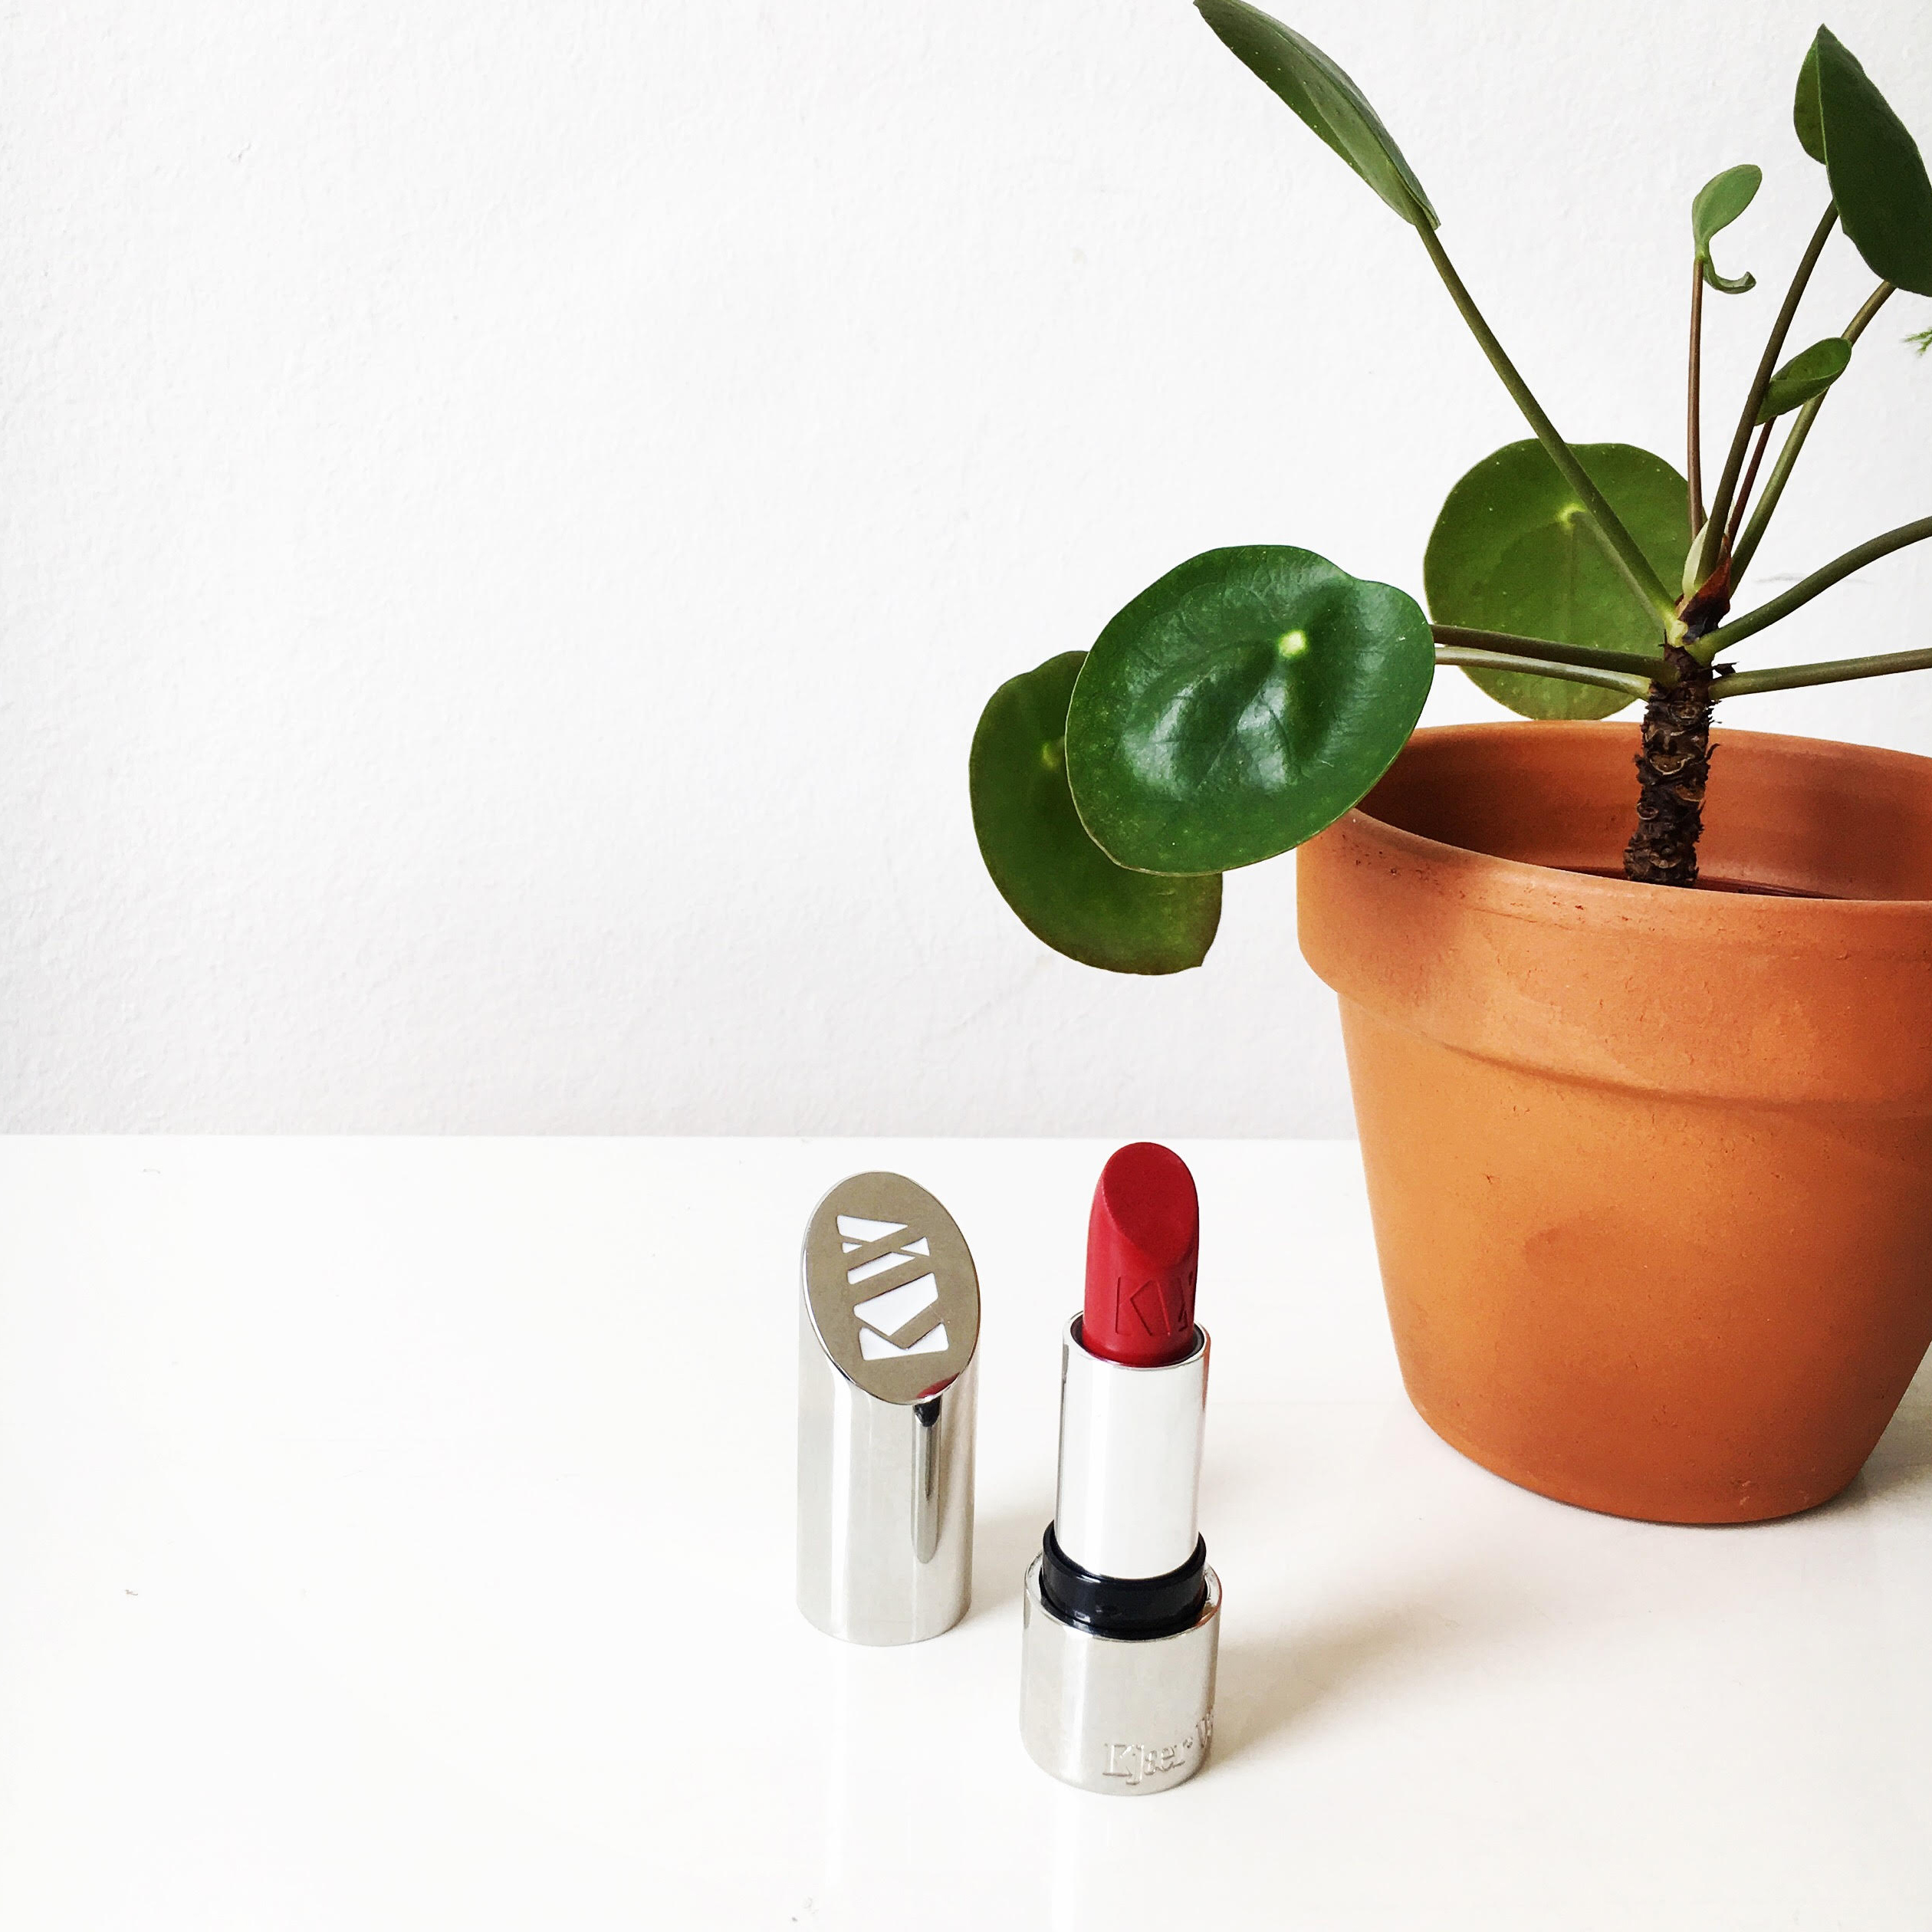 Kjaer Weis Lipstick in the colour Love — nutritionist Eve Kalinik's favourite lip product | CONTENT Open House